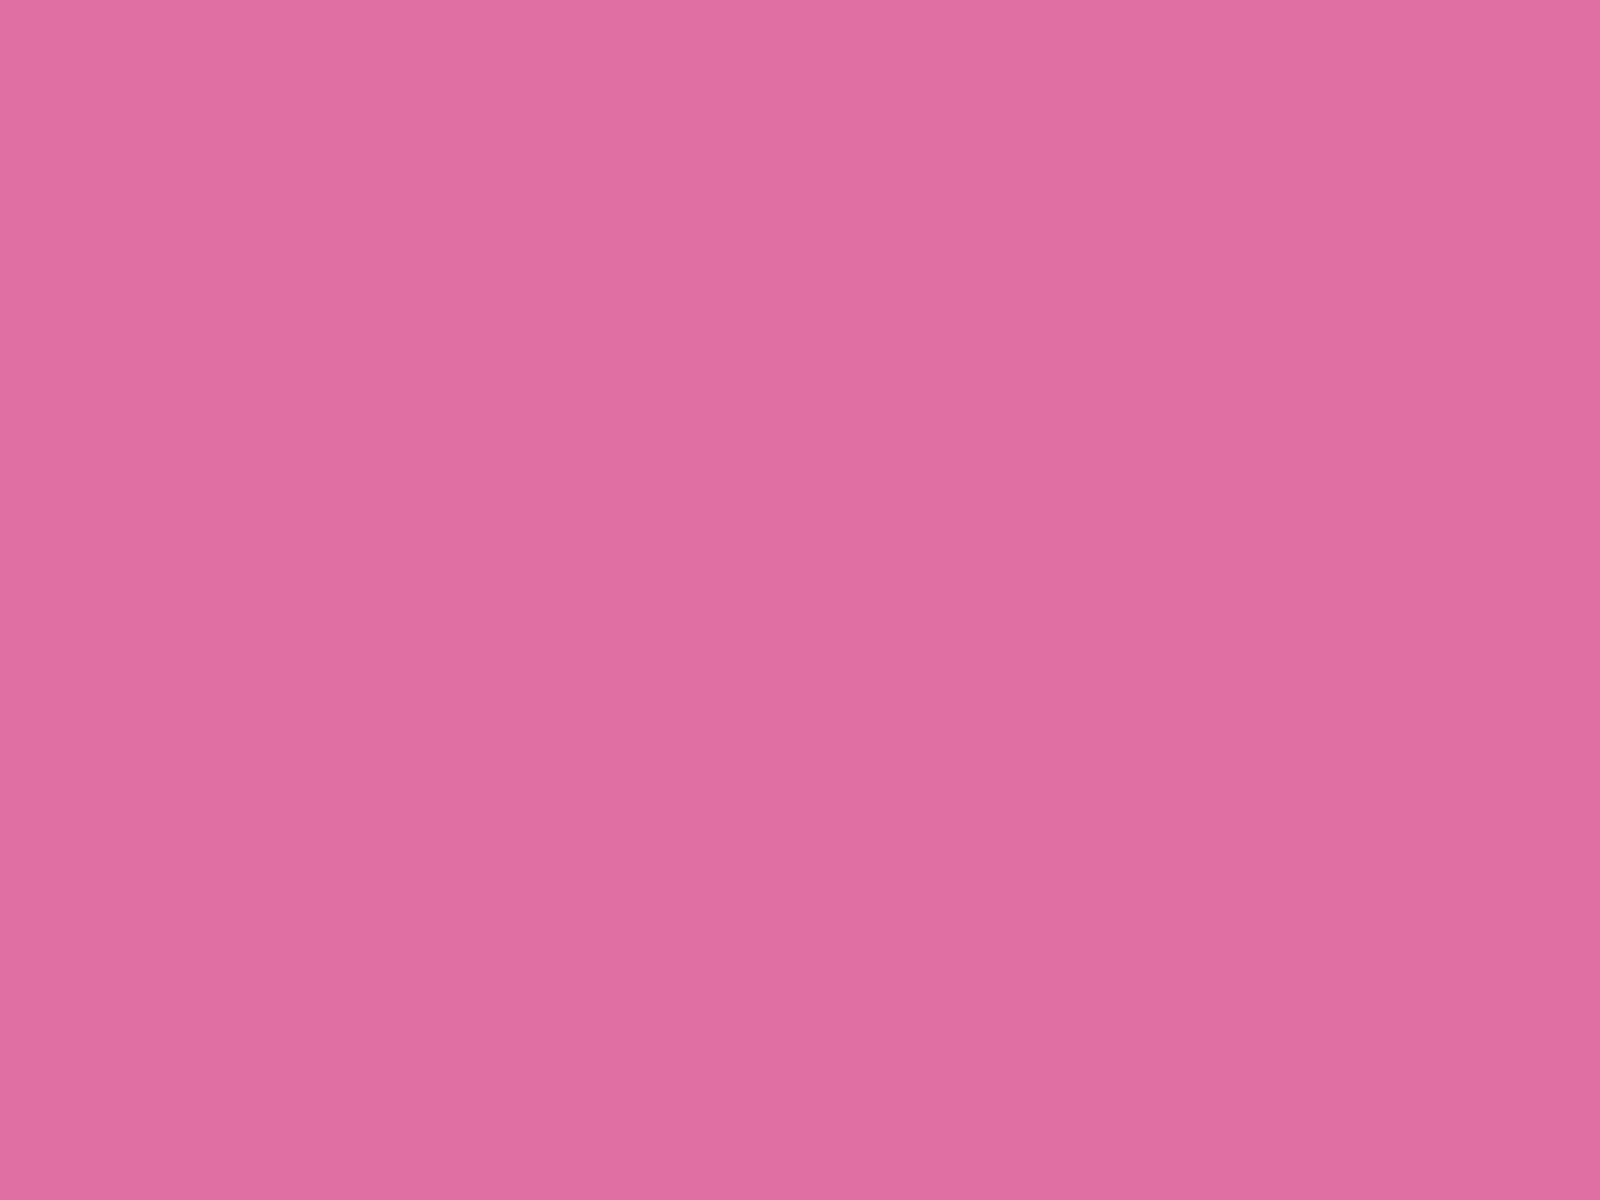 1600x1200 Thulian Pink Solid Color Background